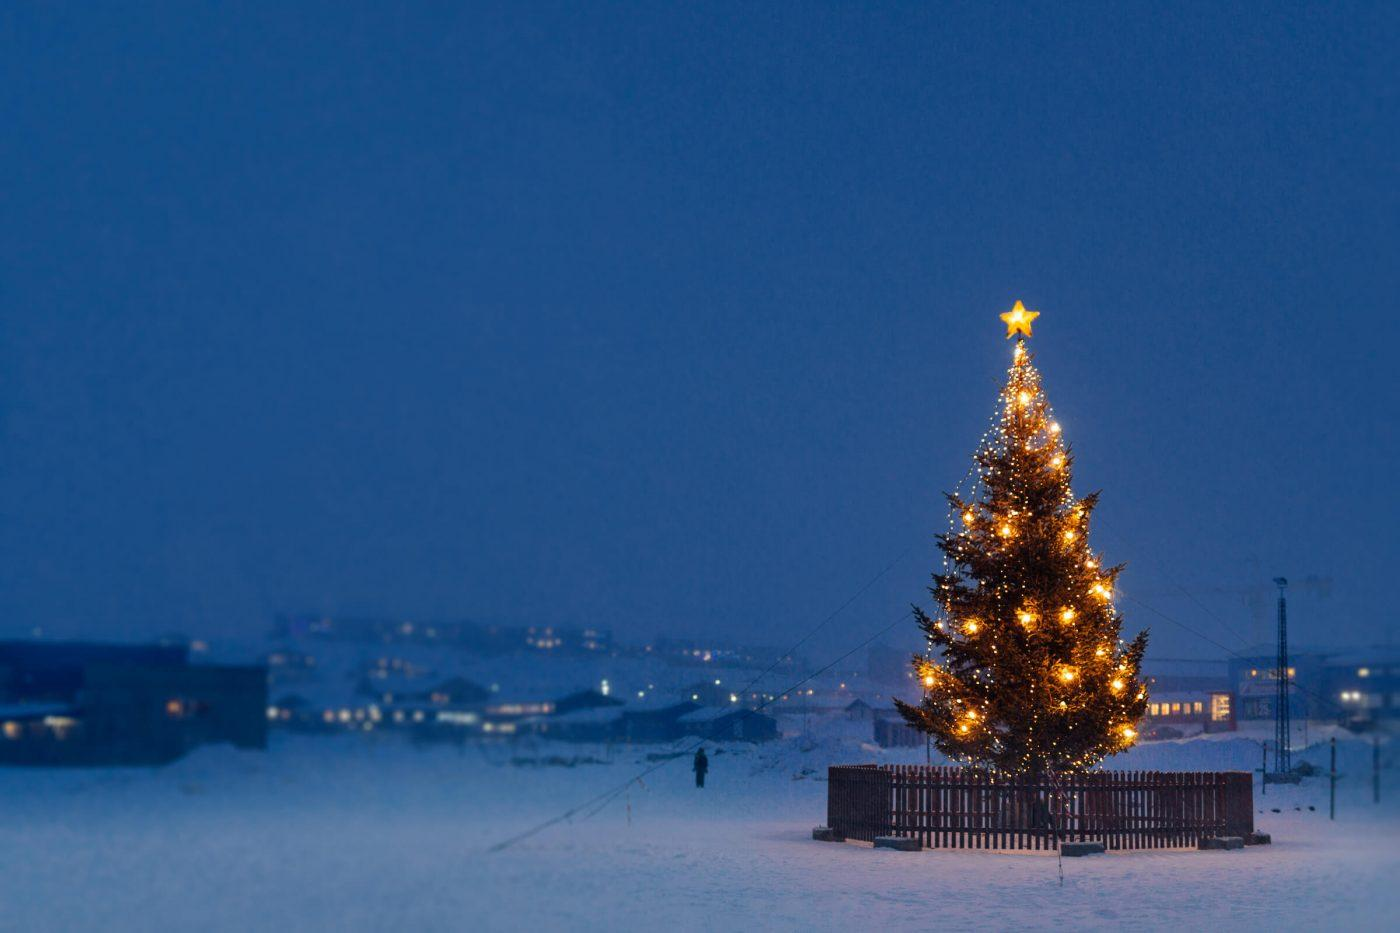 A Christmas tree in Nuuk in Greenland on a snowy december afternoon. Photo by Rebecca Gustafsson - Visit Greenland